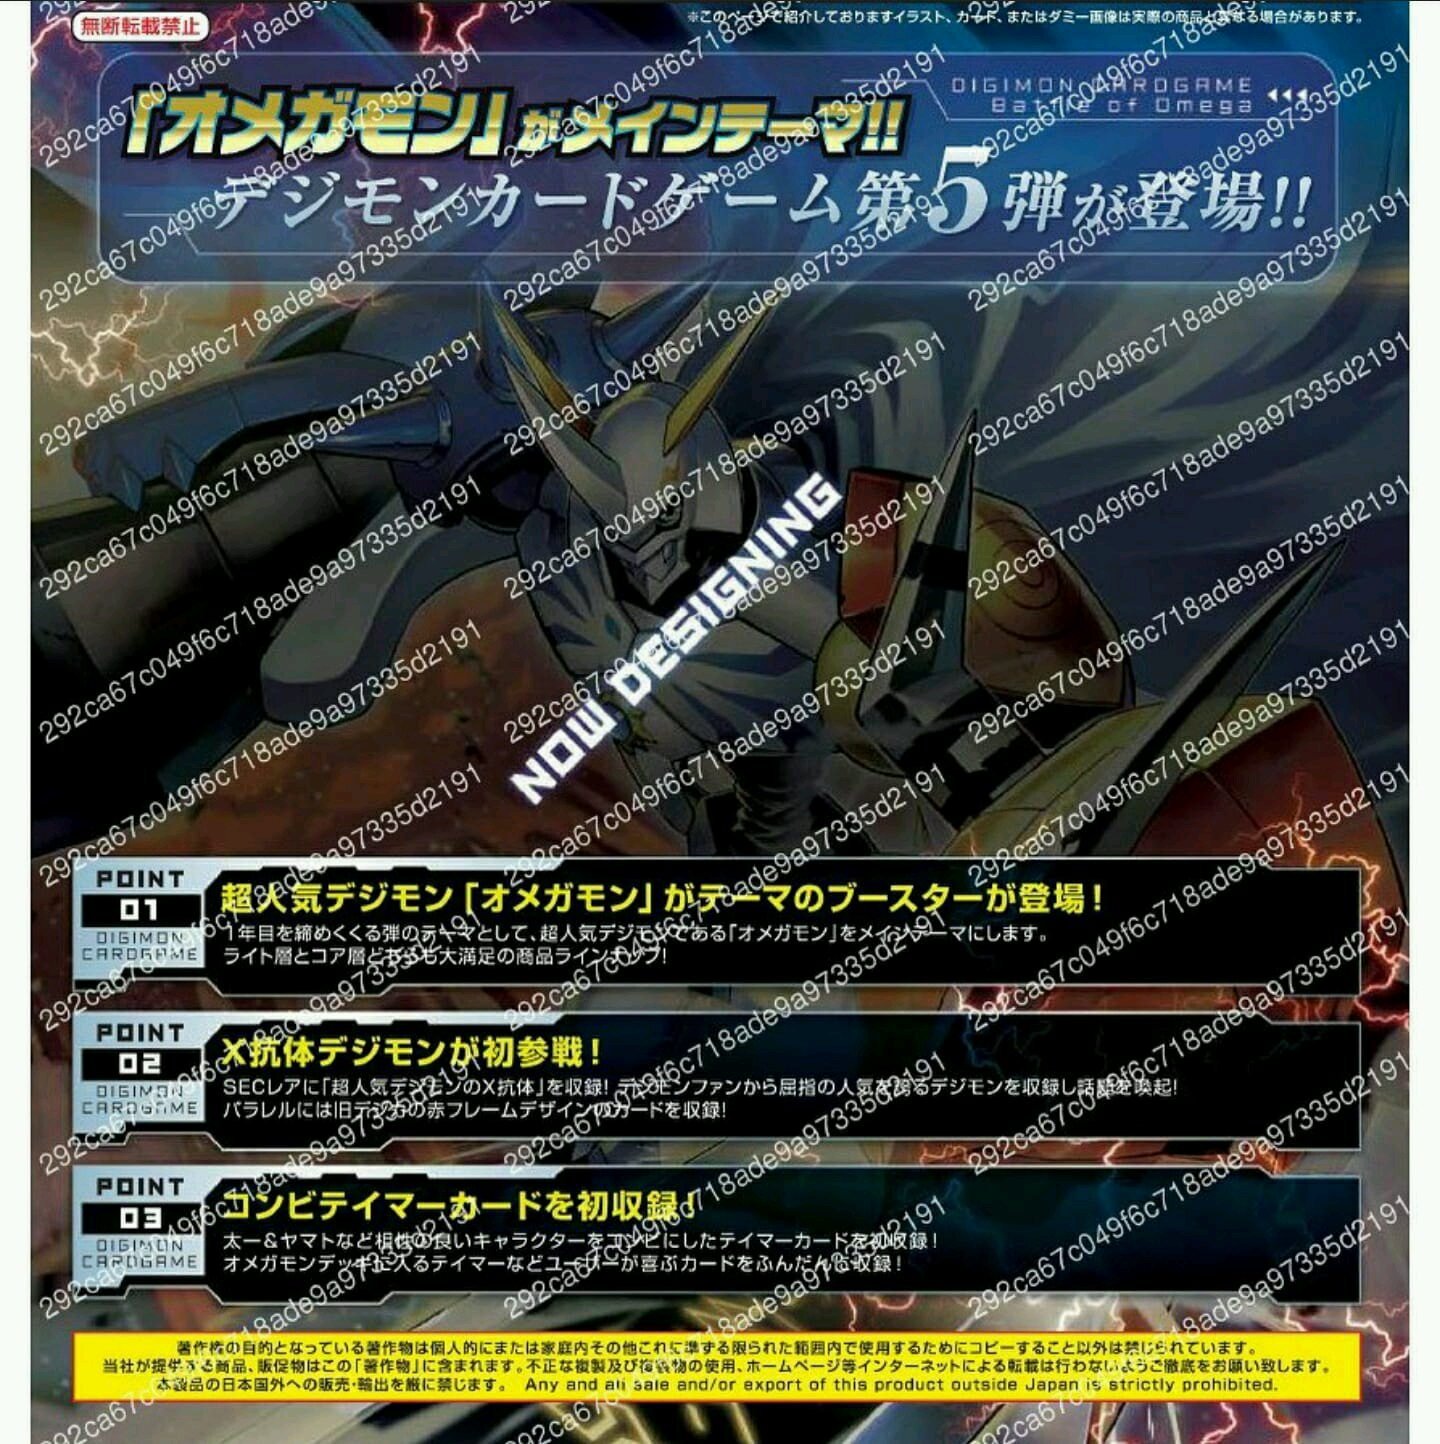 Card Game Booster Set 5 Battle Of Omega Update Information From Sales Sheet Omegamon Double Tamer Card X Antibody Digimon With The Will Digimon Forums 7,378 likes · 271 talking about this. card game booster set 5 battle of omega